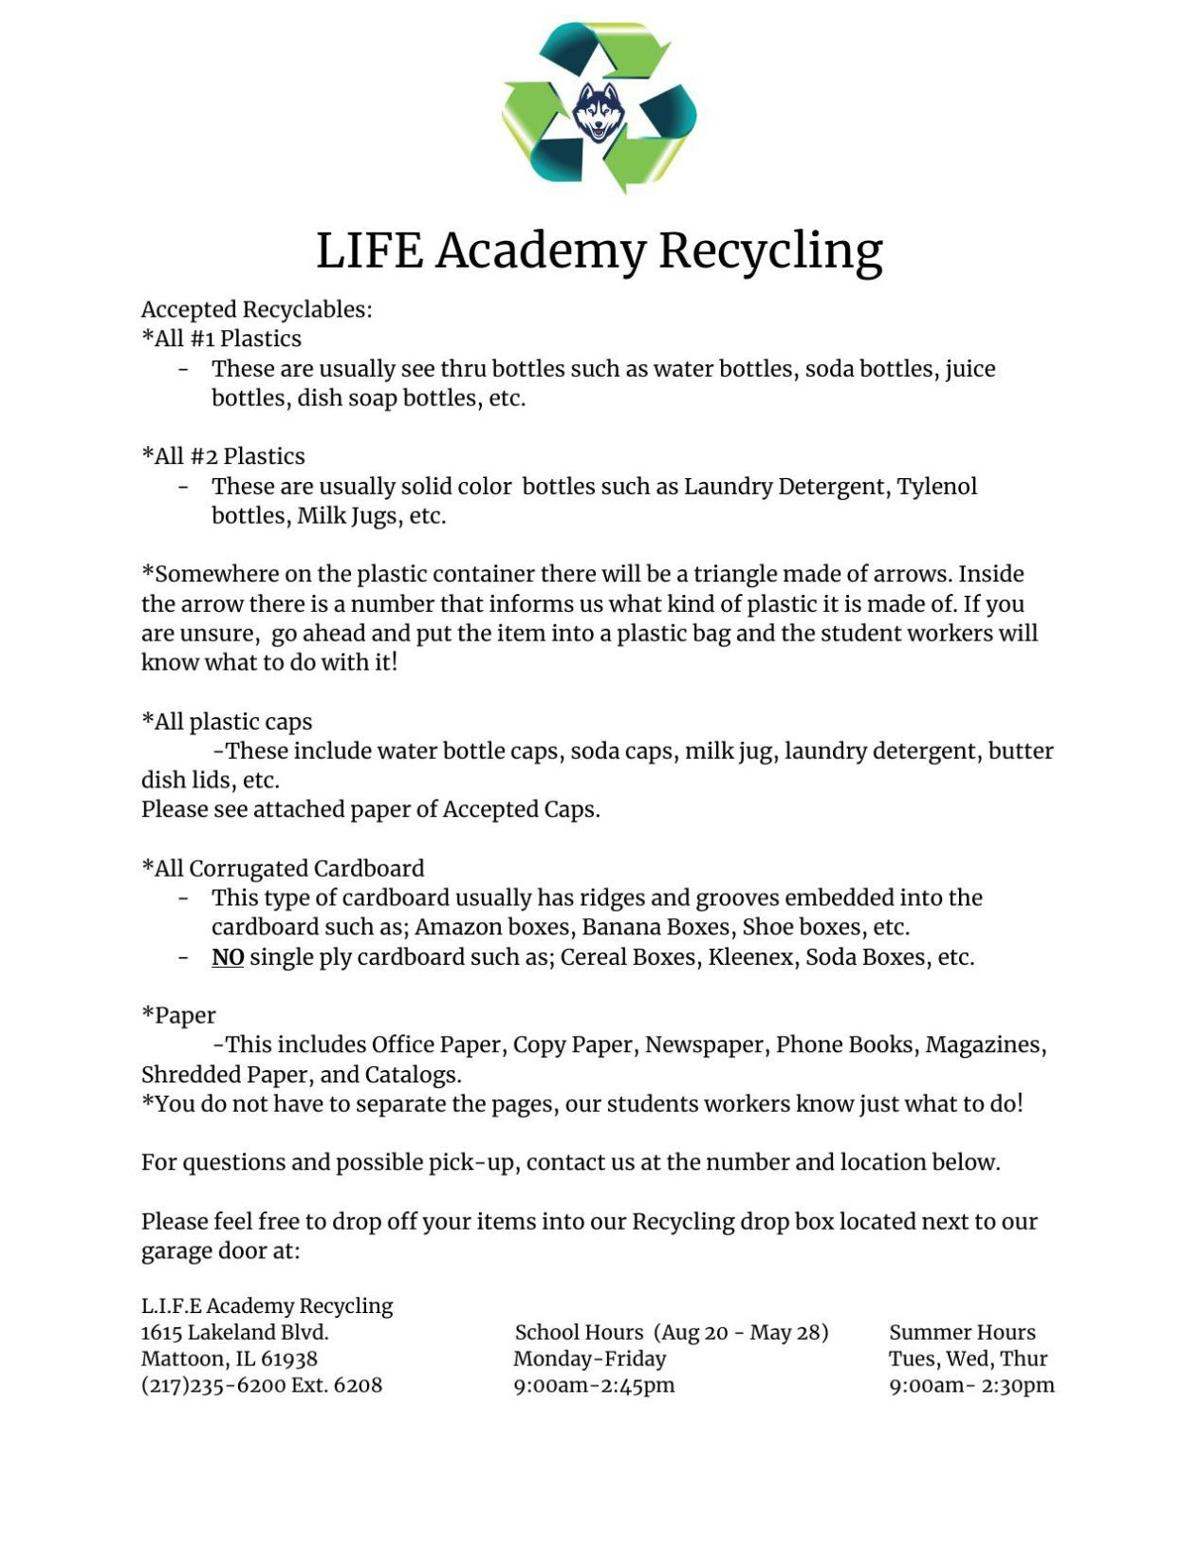 LIFE Academy accepted recyclables